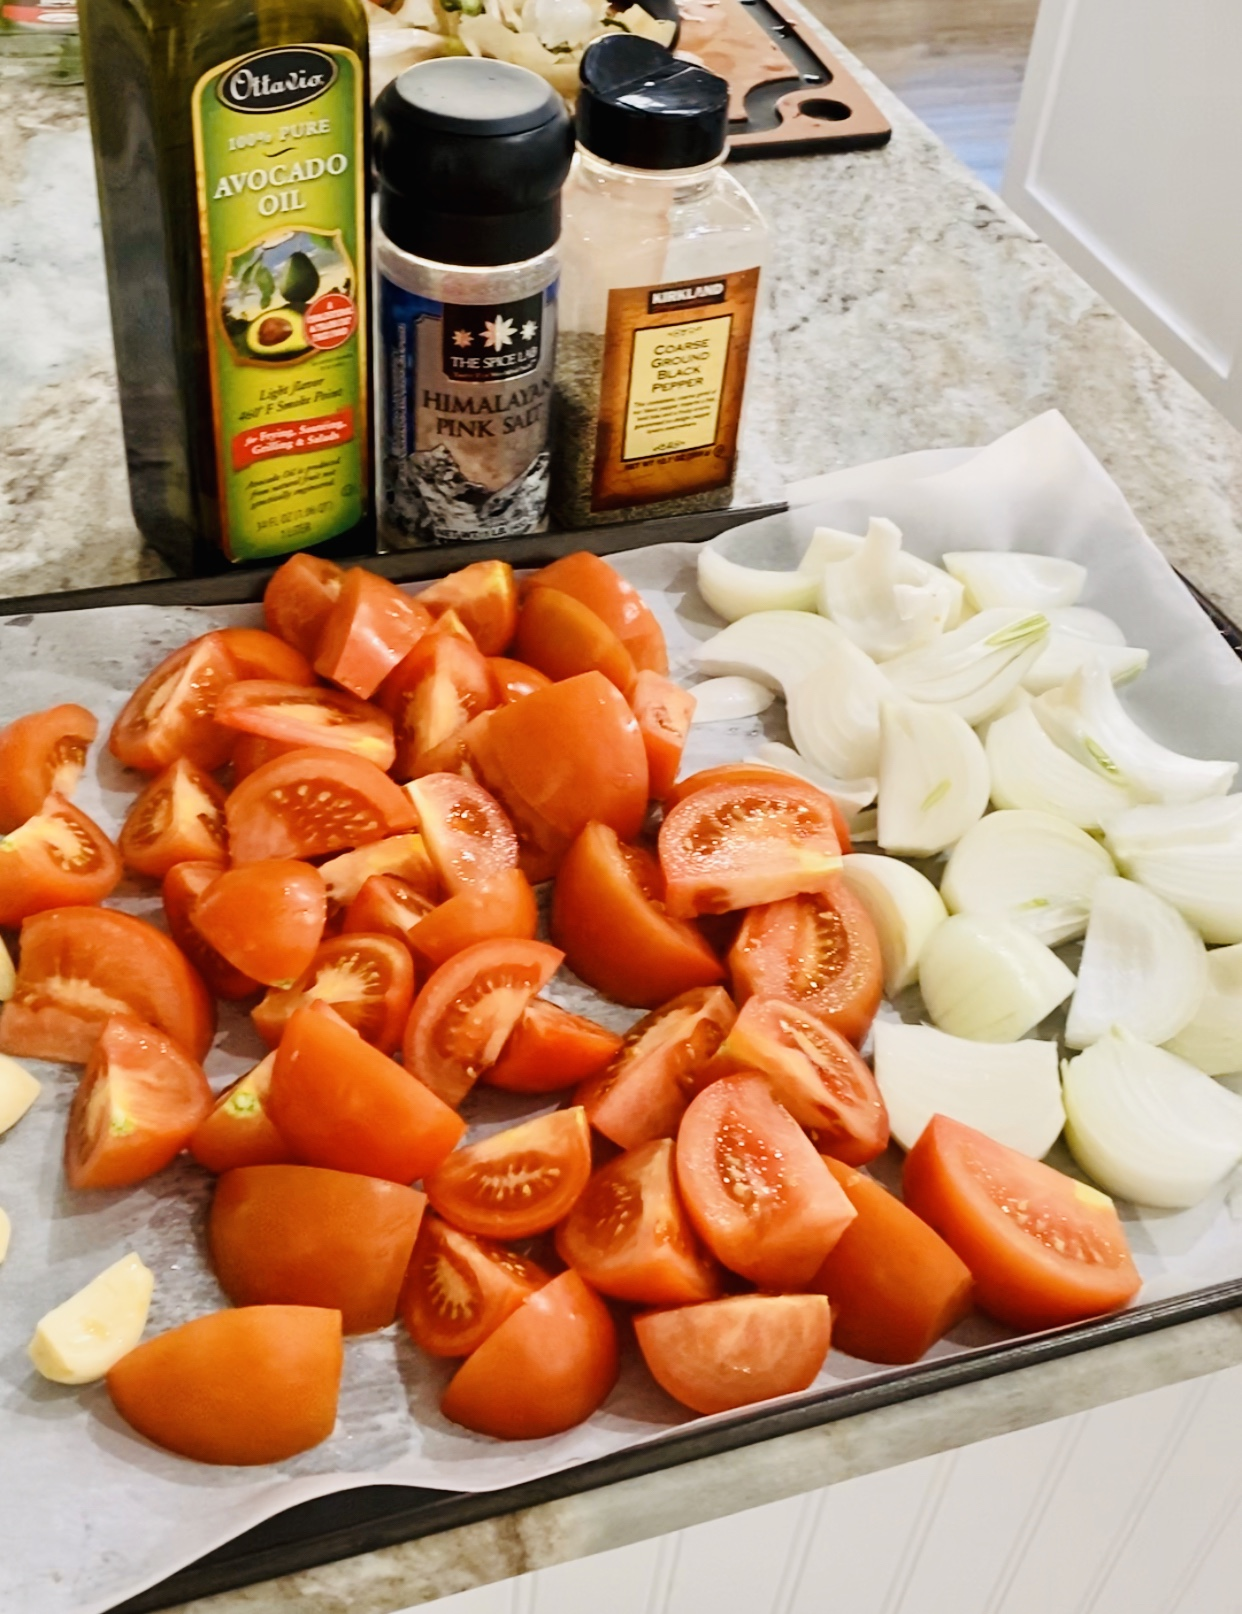 Sliced veggies with oil and spices on a counter.